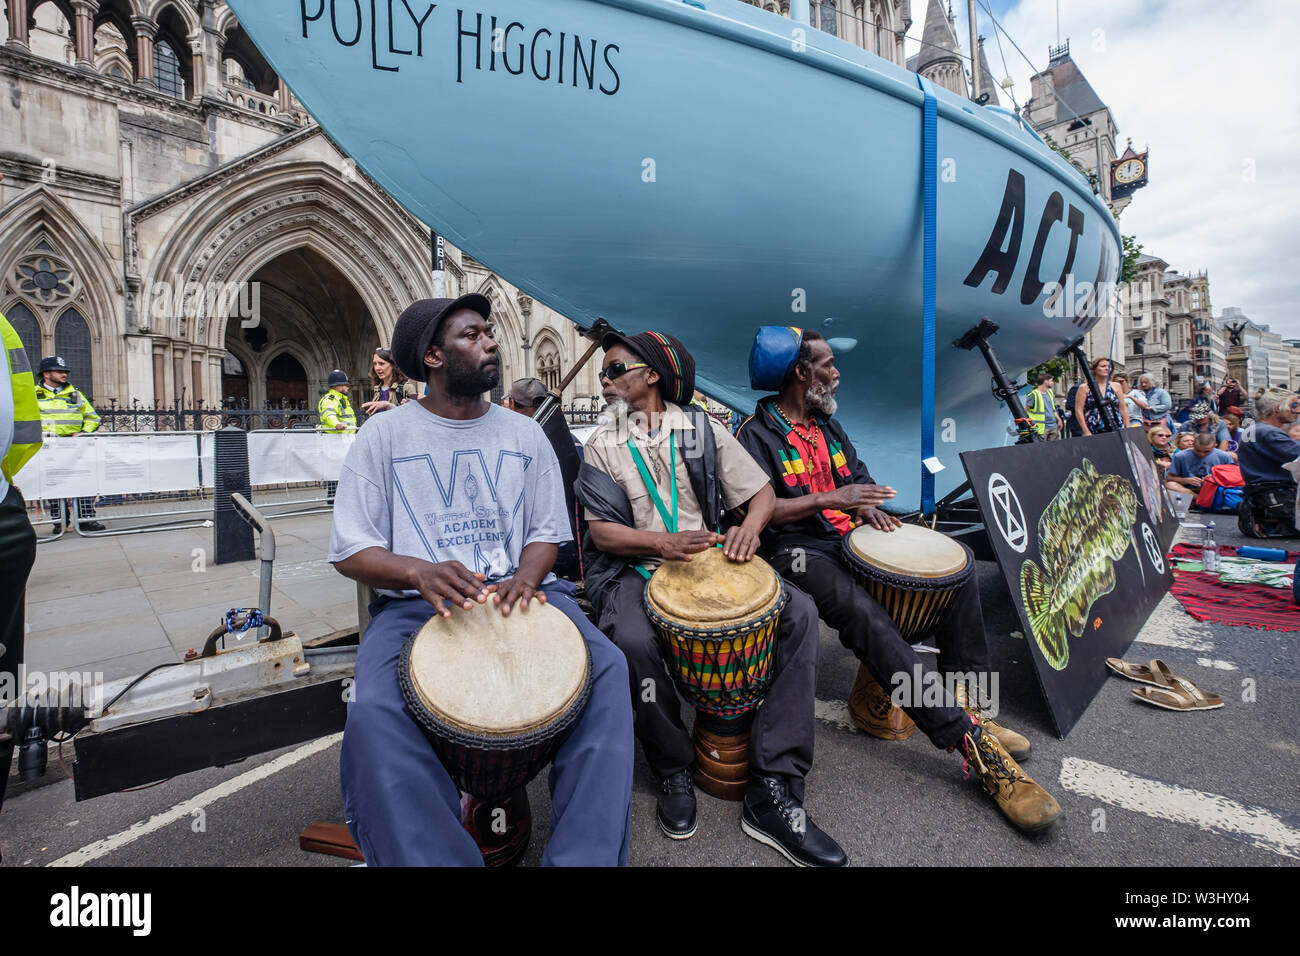 London, UK. 15th July, 2019. Drummers play for a ceremony against ecocide as Extinction Rebellion begins another series of protests in five major cities against the criminal inaction by the government on climate and ecological collapse. The protesters brought a yacht named after Polly Higgins who fought for years for an Ecocide Law to the Royal Courts of Justice and continued her fight blocking the Strand all day with performances, discussions, speeches, music and ceremonies in front of the yacht. Credit: Peter Marshall/Alamy Live News - Stock Image